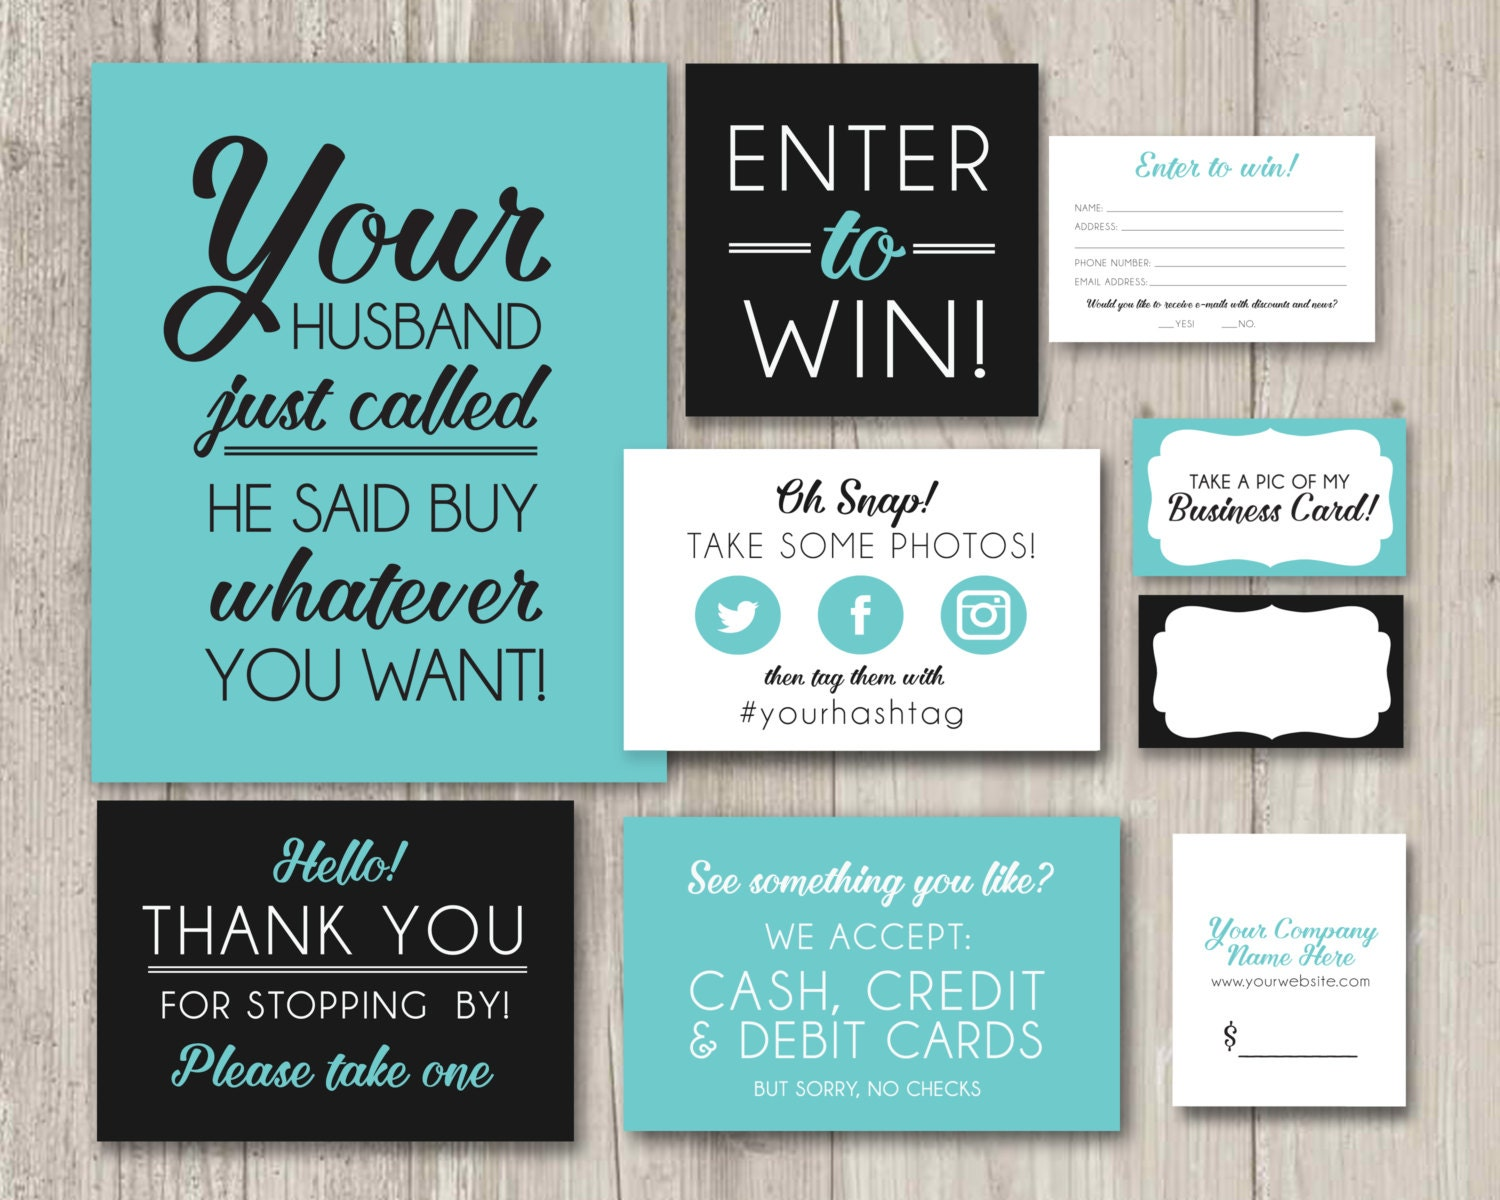 prize vendor table kit craft table kit table signs vendor fair table decor printable signs enter to win oh snap thank you signs printable